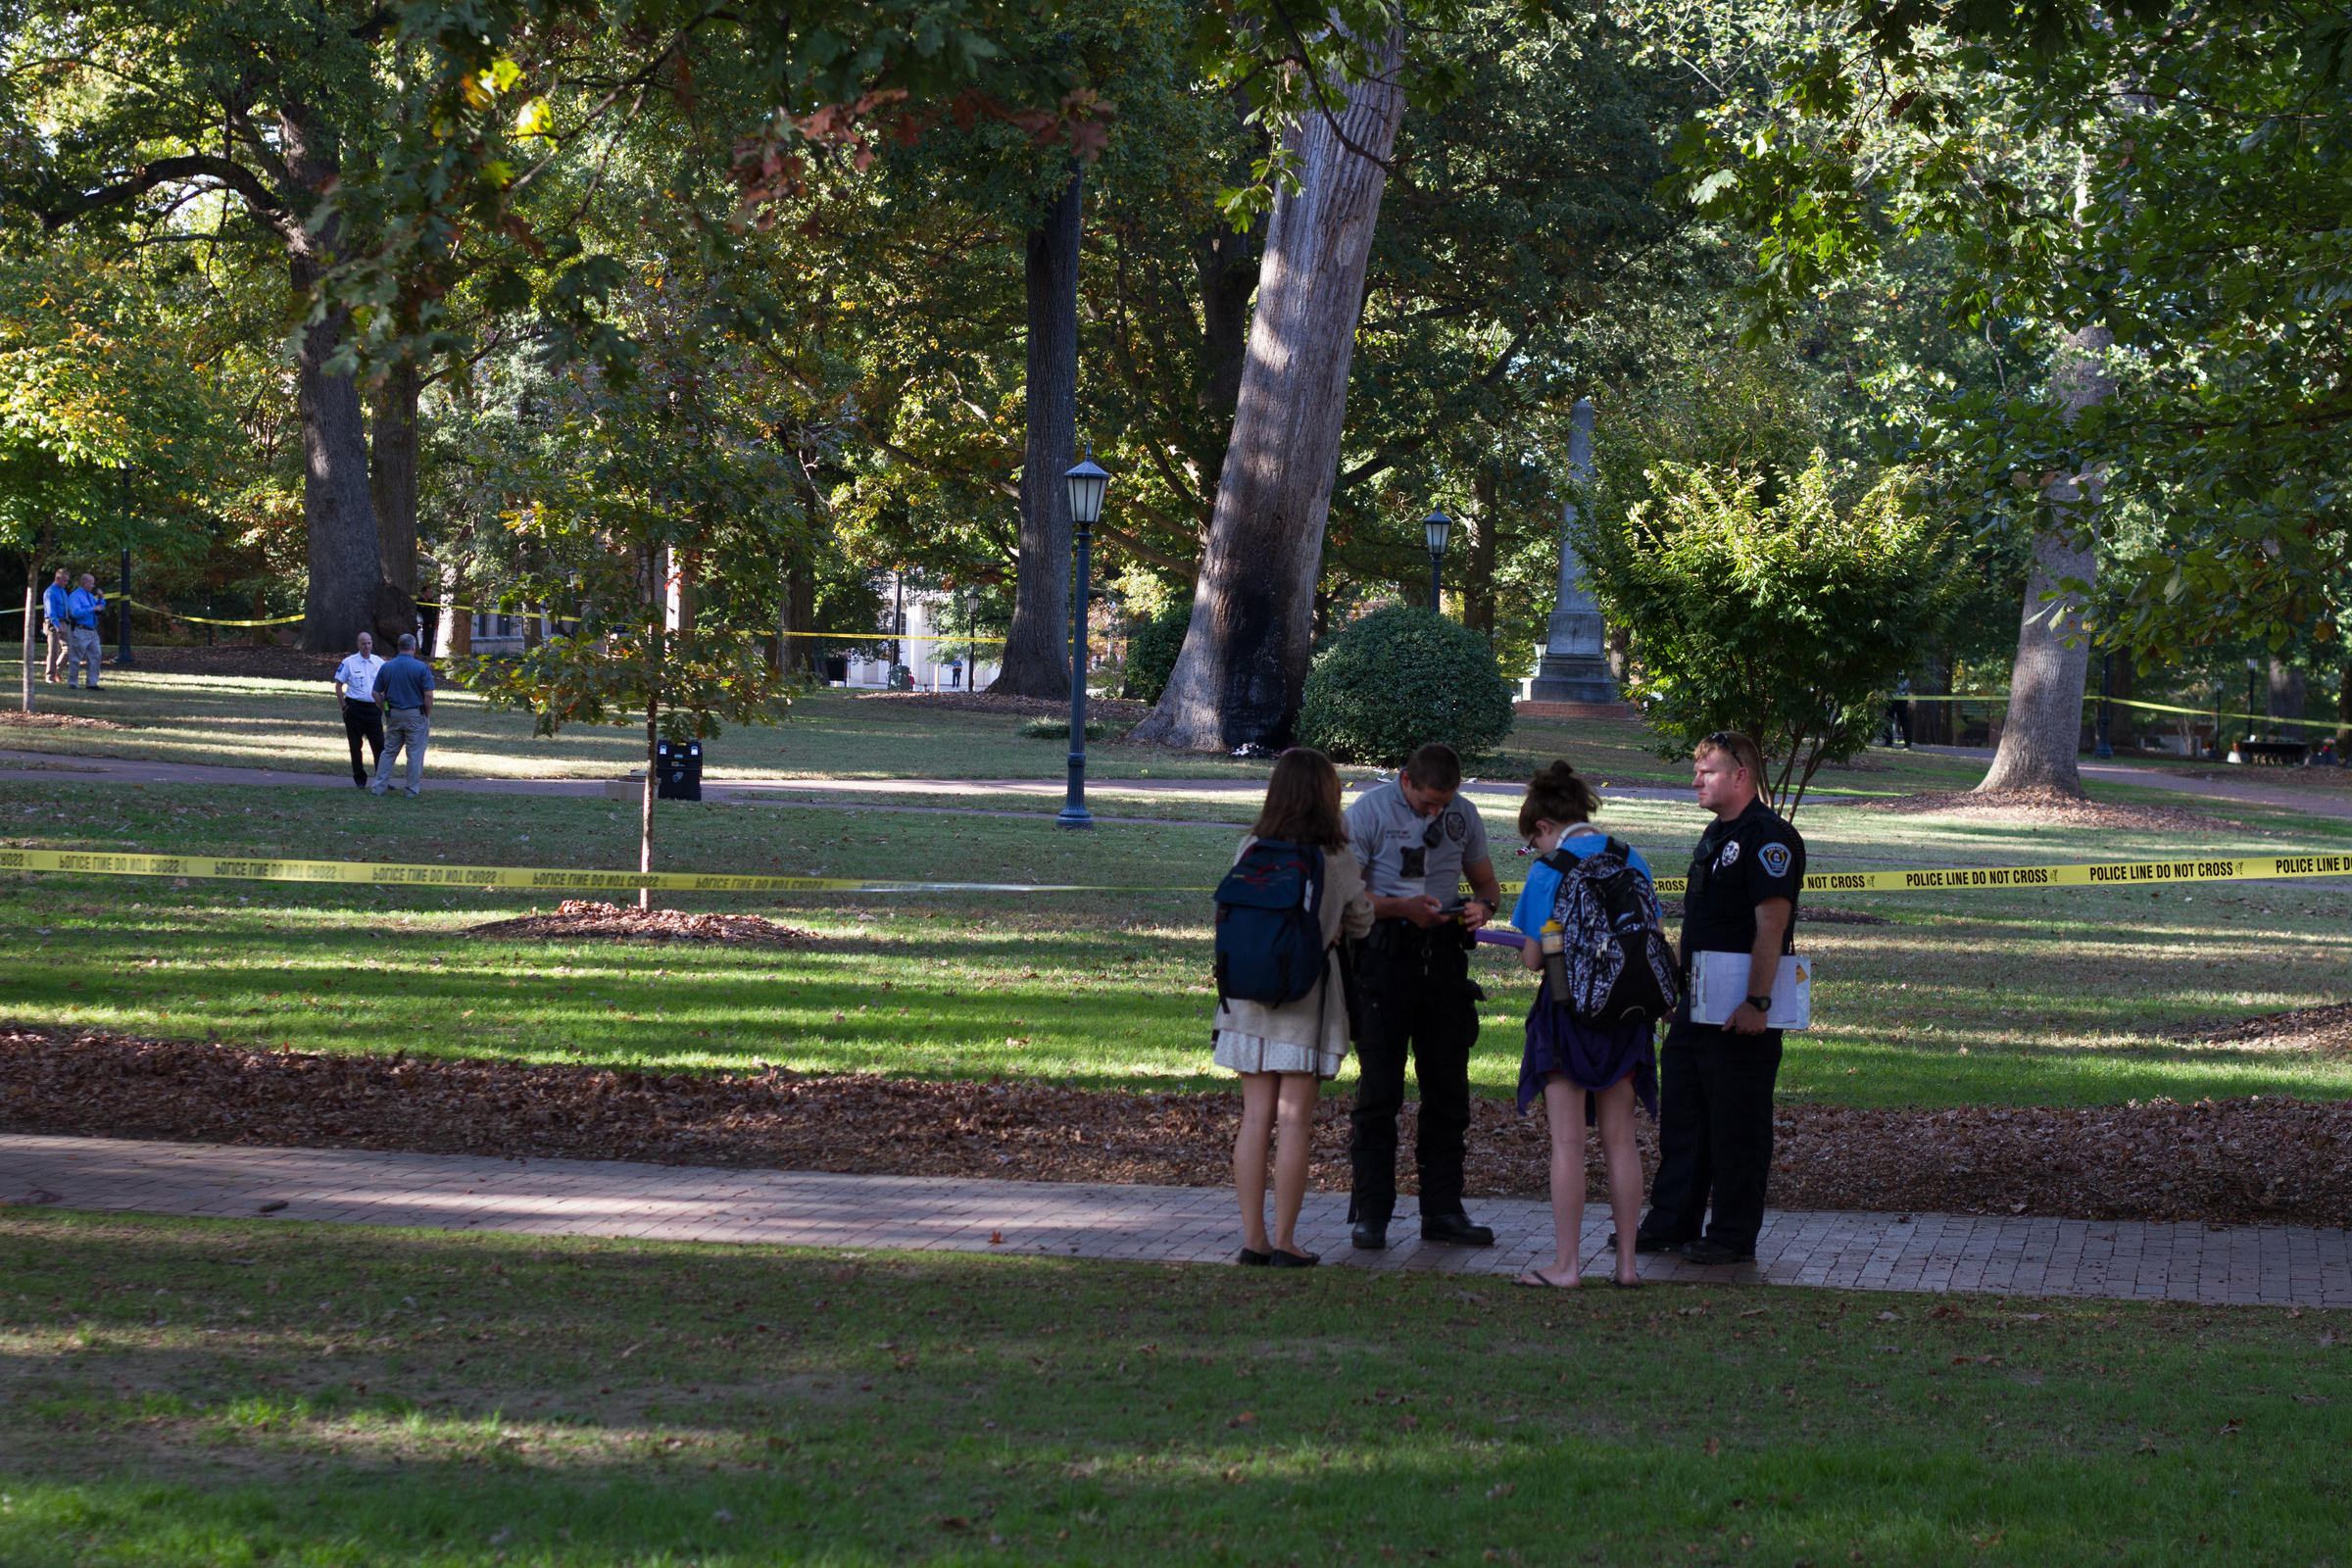 Device detonated at Davie Poplar tree on UNC's campus